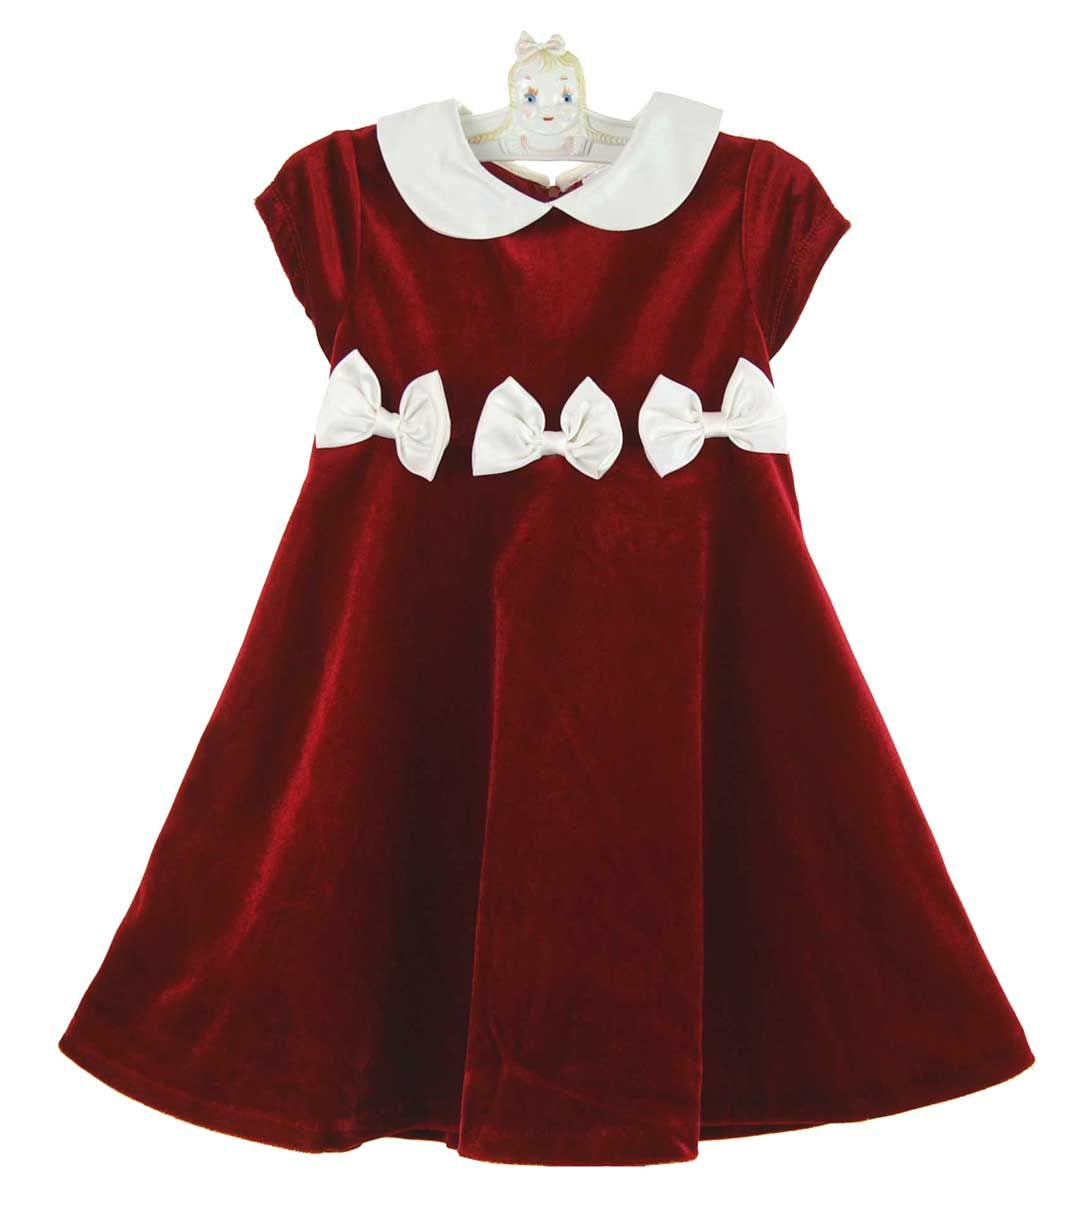 Rare Editions Christmas Toddler.New Rare Editions Red Velvet Dress With Ivory Collar And